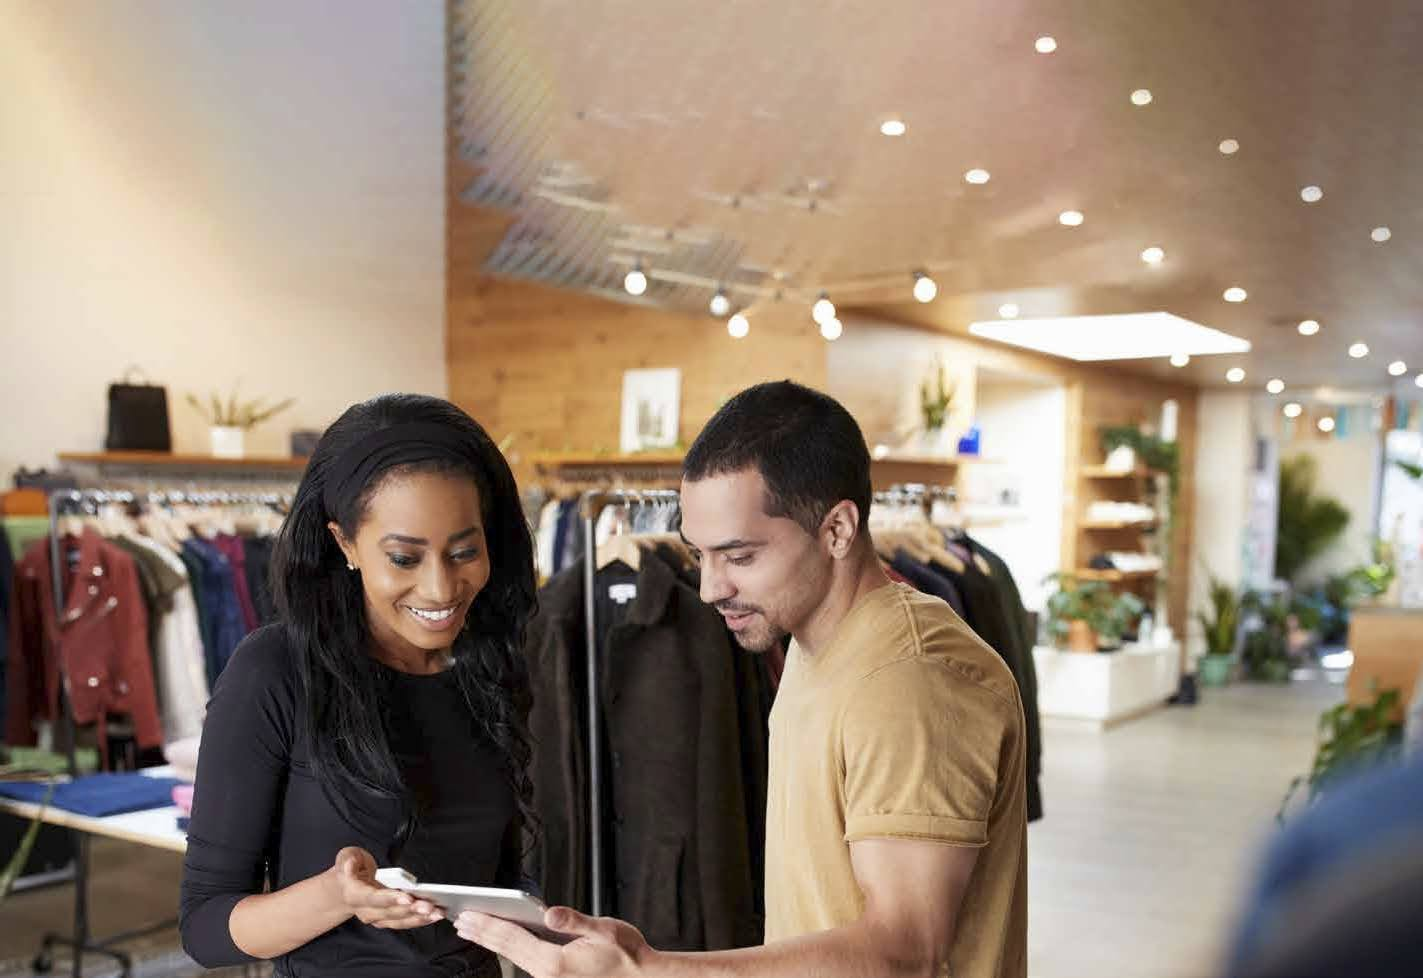 How to use data and AI to cut costs and deliver personalized shopping experiences